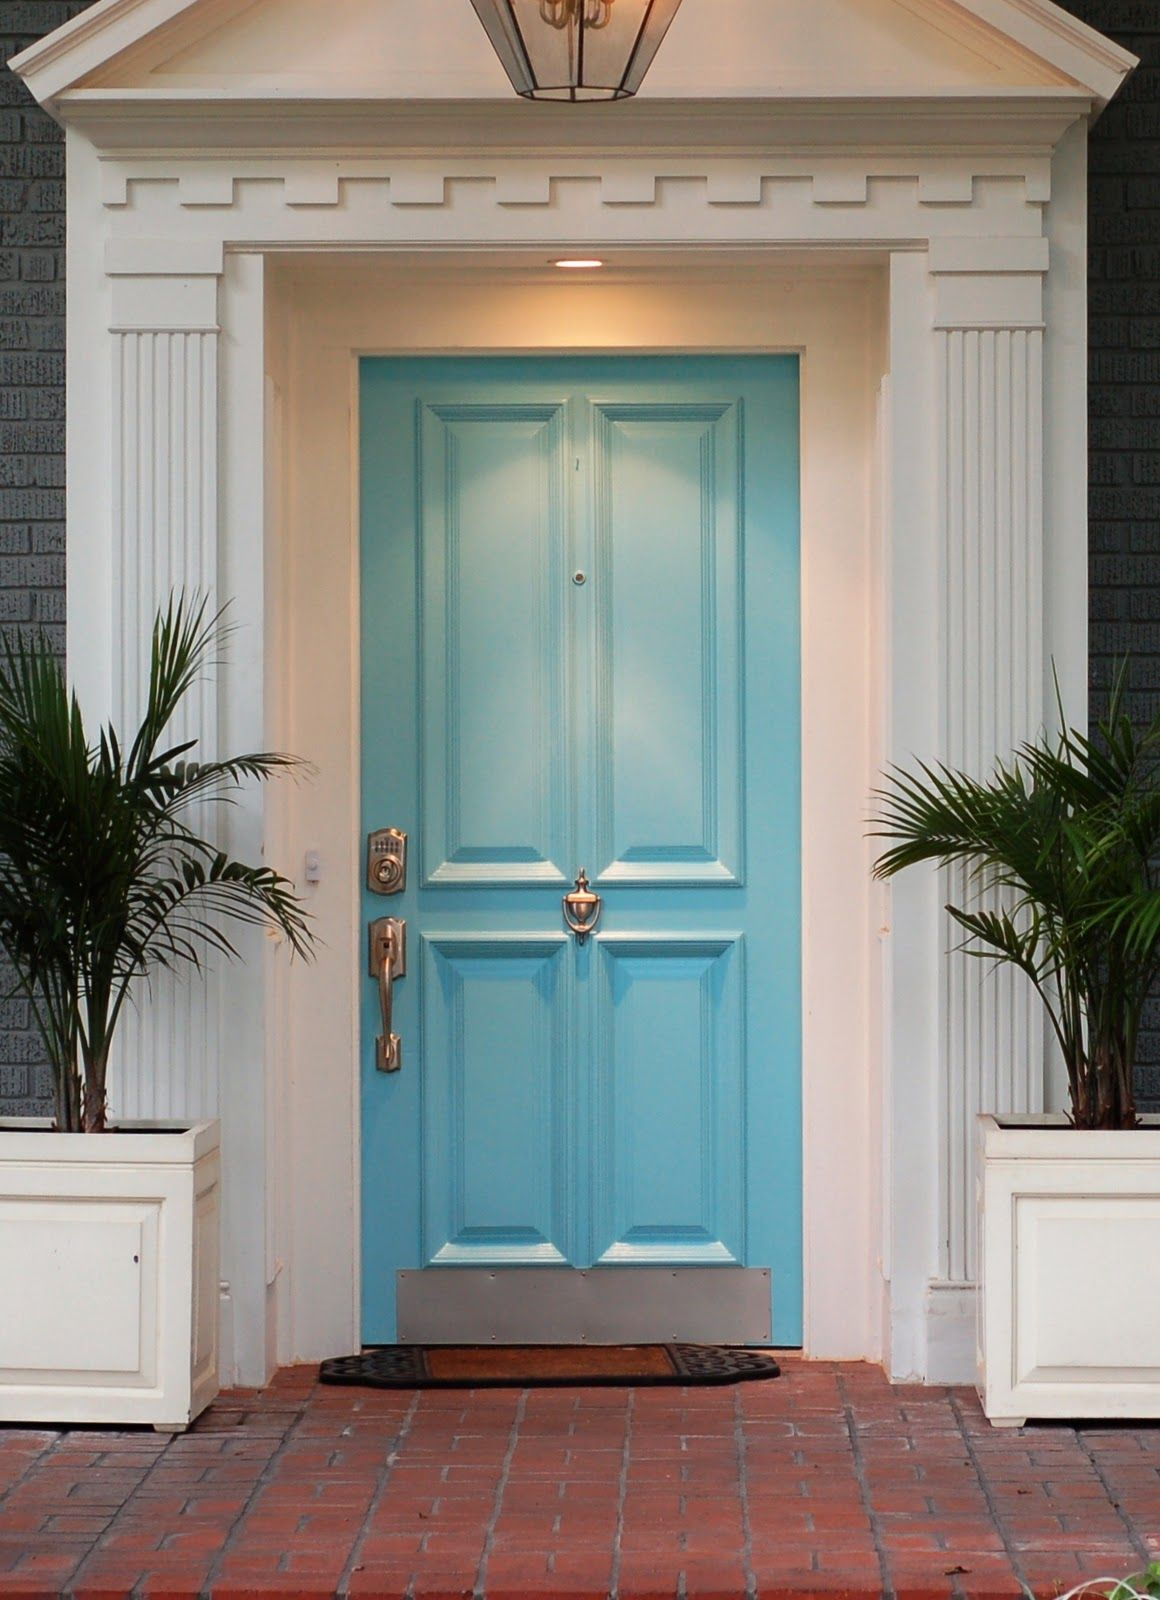 Feng Shui Blue Doors Represent Trust Loyalty And Stability The Color Blue Is Often Linked With Thou Front Door Design Front Door Colors Painted Front Doors